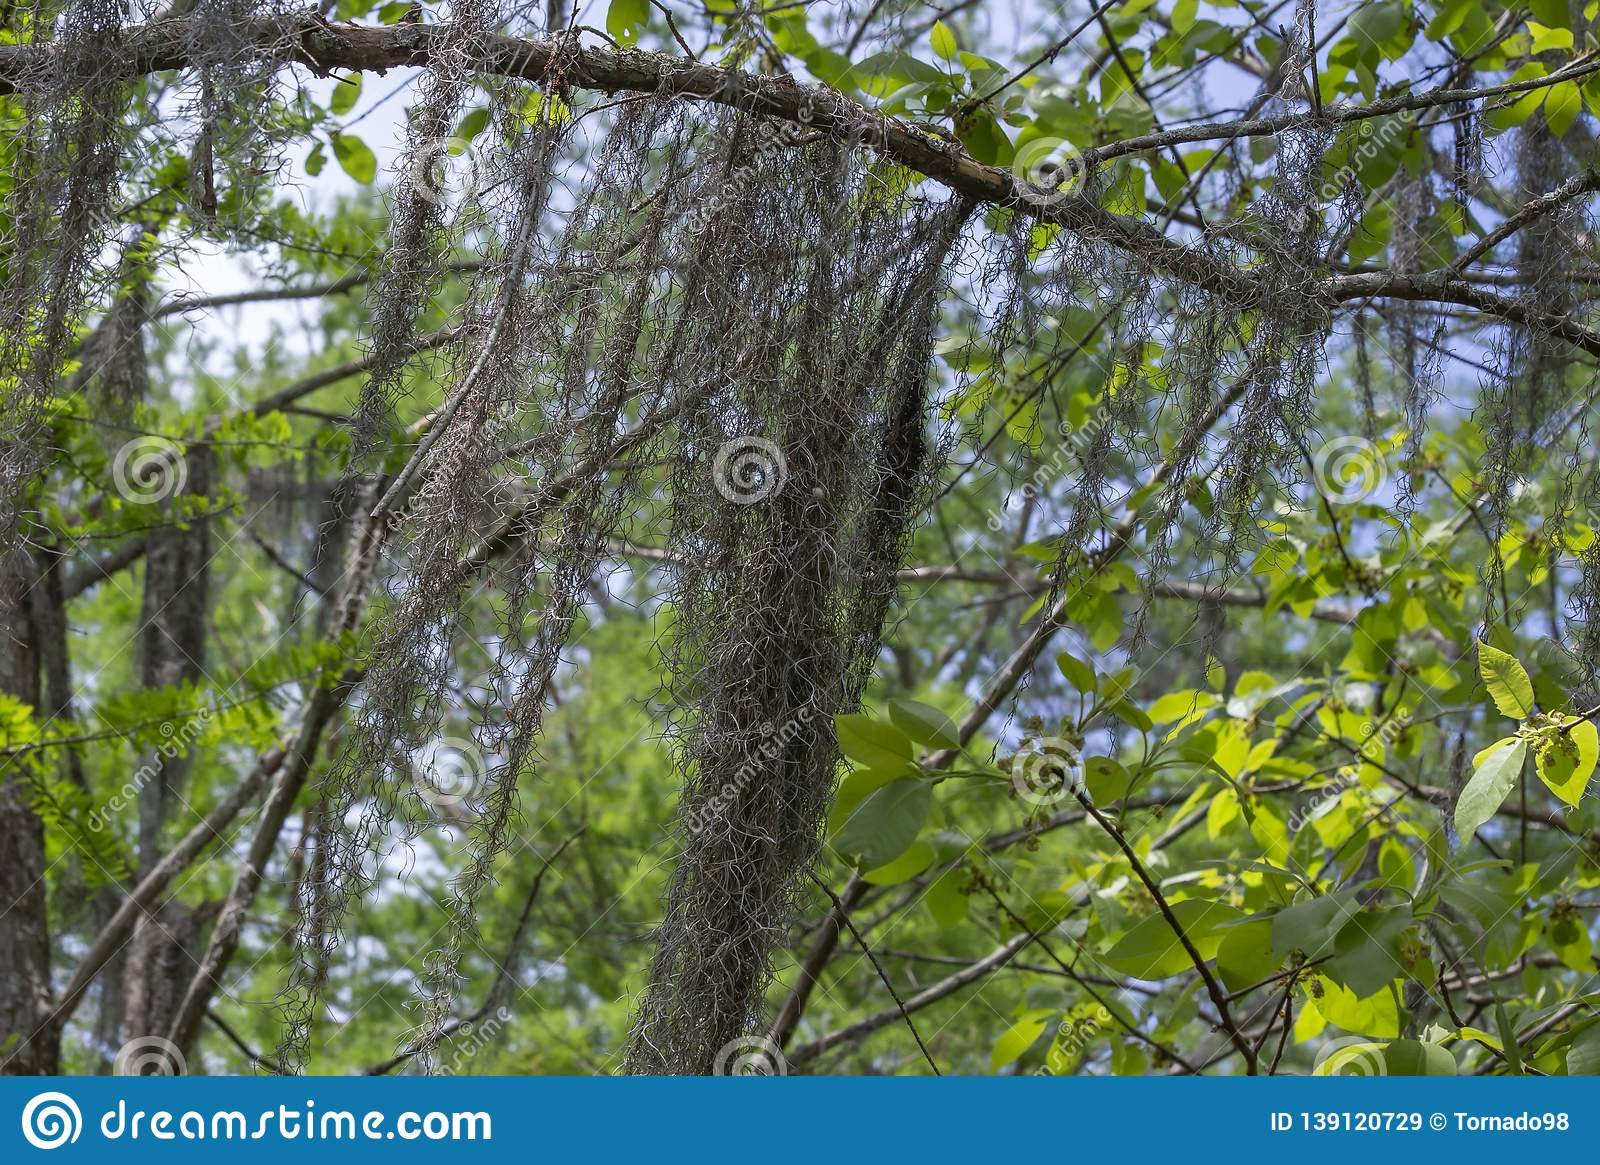 Spanish Moss Hanging From Tree Stock Image - Image of ...